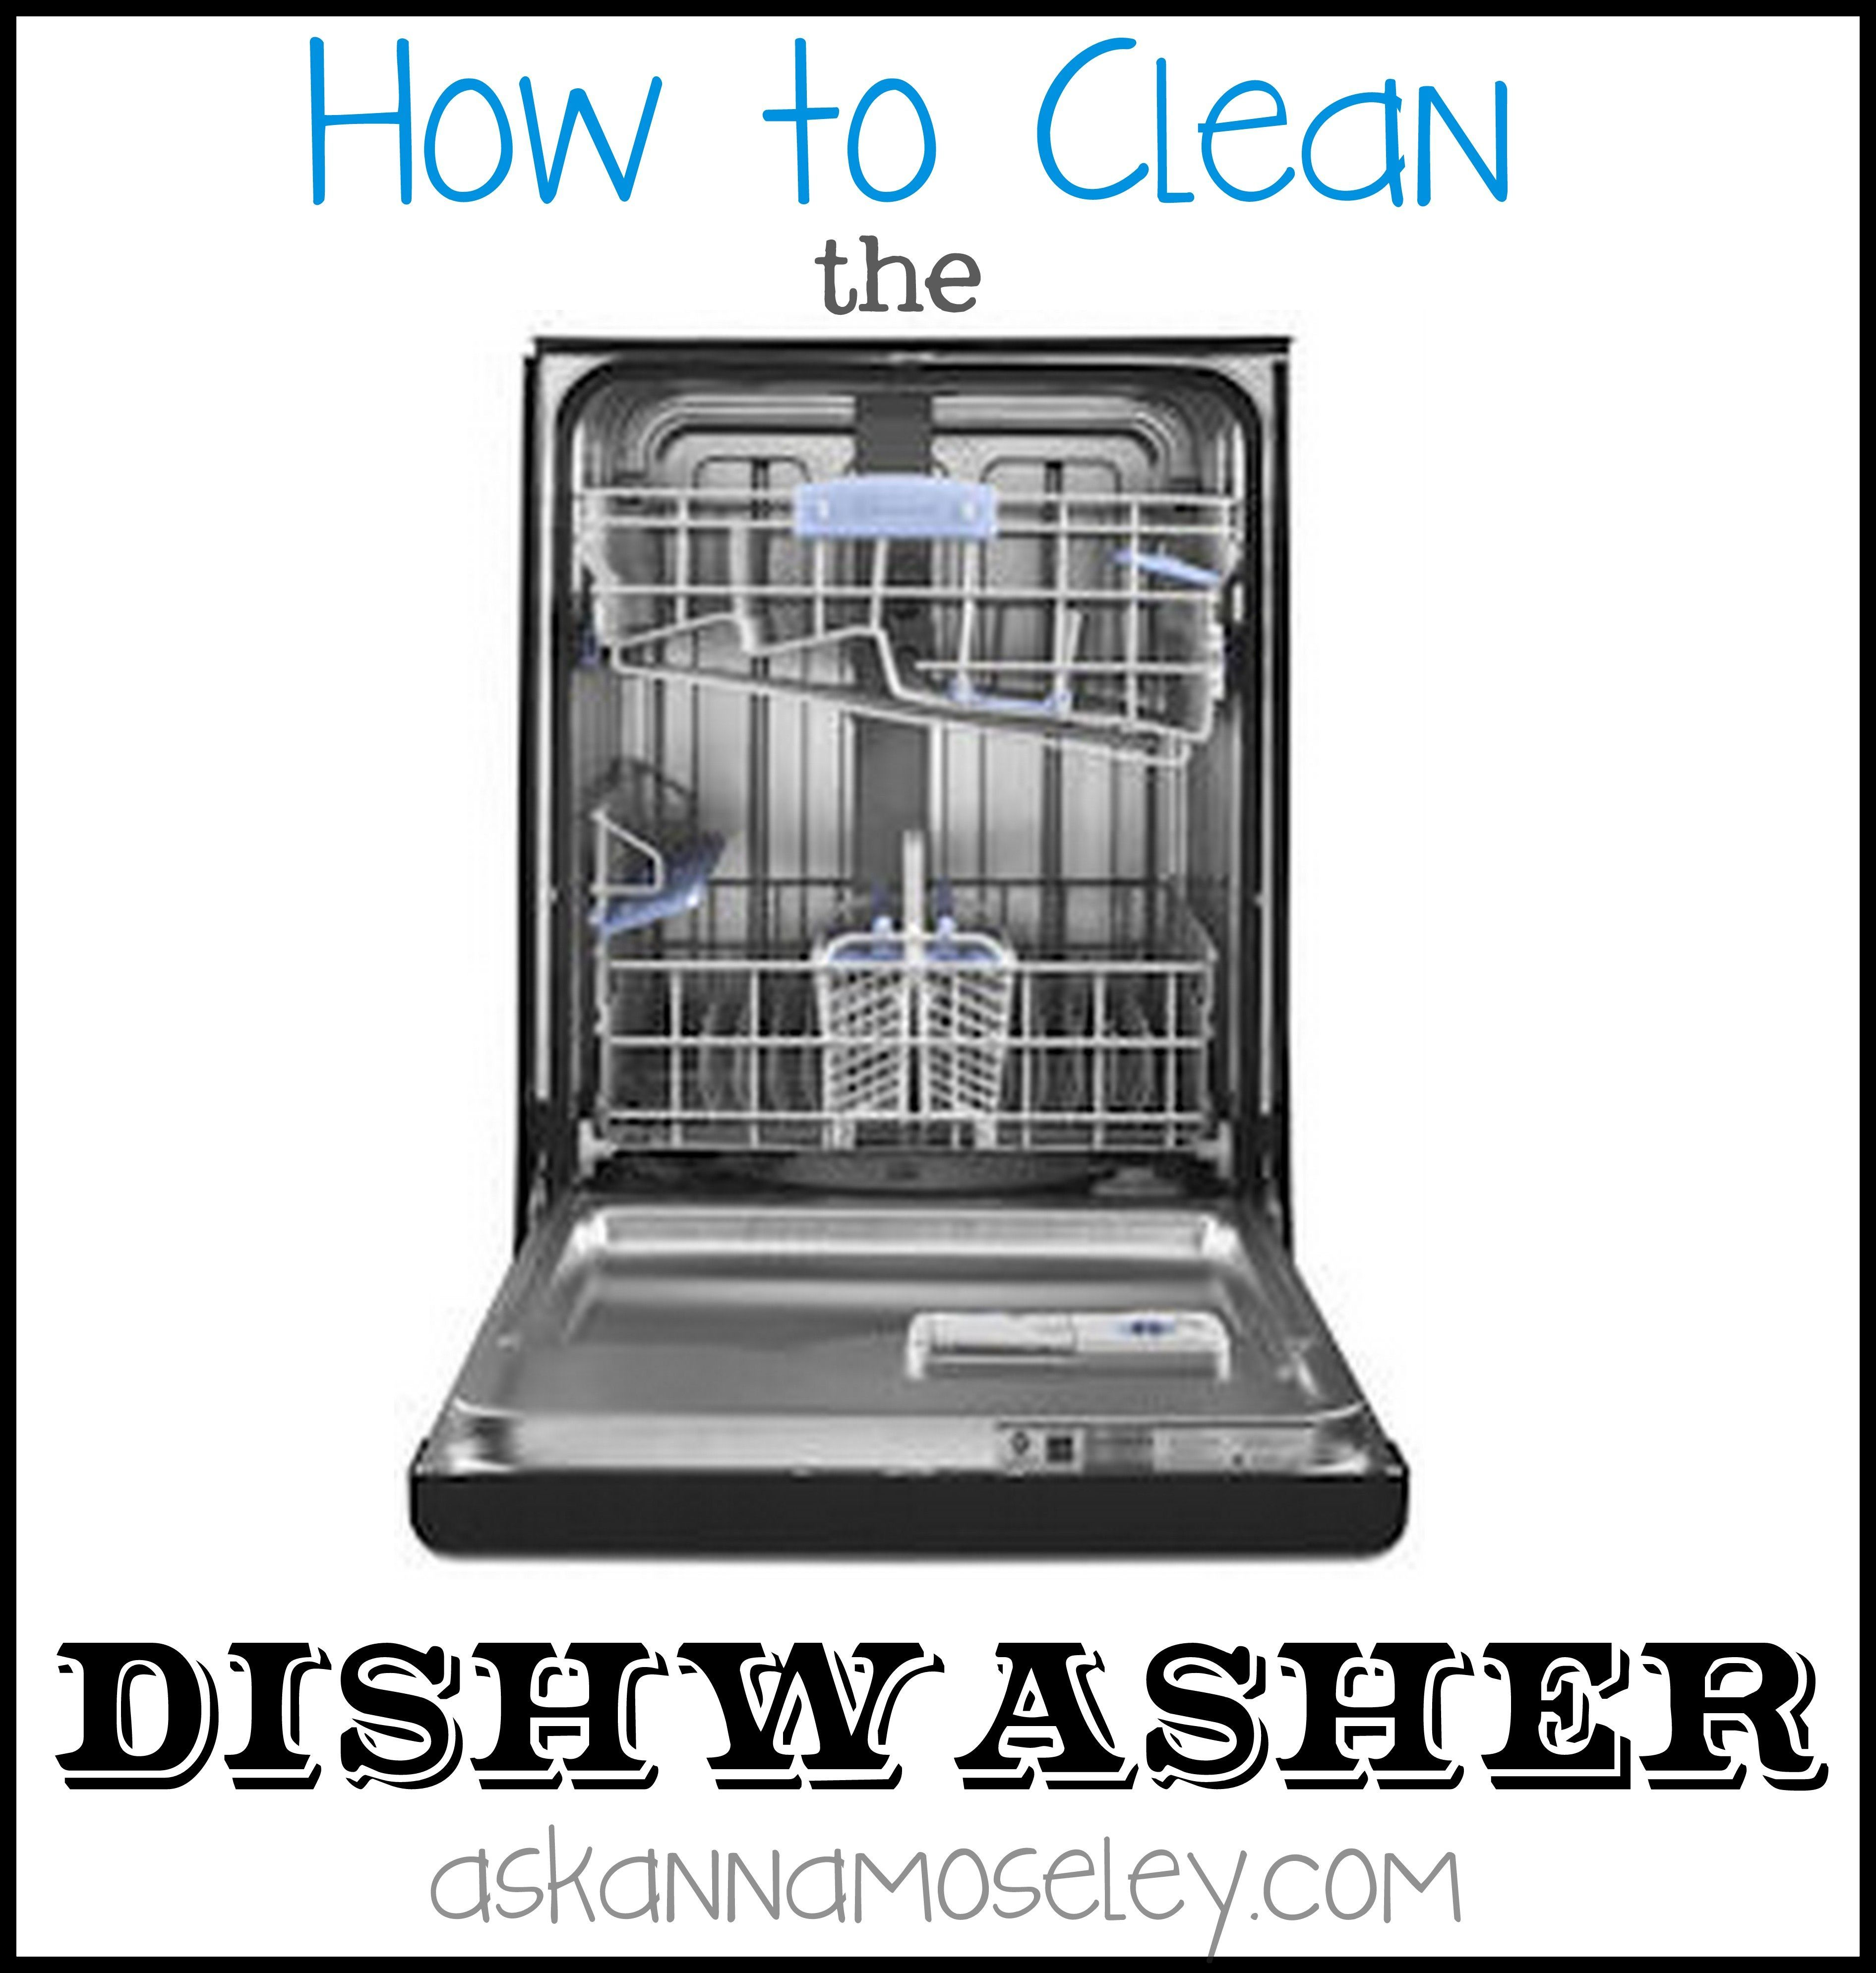 Cleaning A Dishwasher Can Be Very Simple This Easy And All Natural Trick Will Help You Get Rid Of The Grime Cleaning Your Dishwasher Clean Dishwasher Cleaning